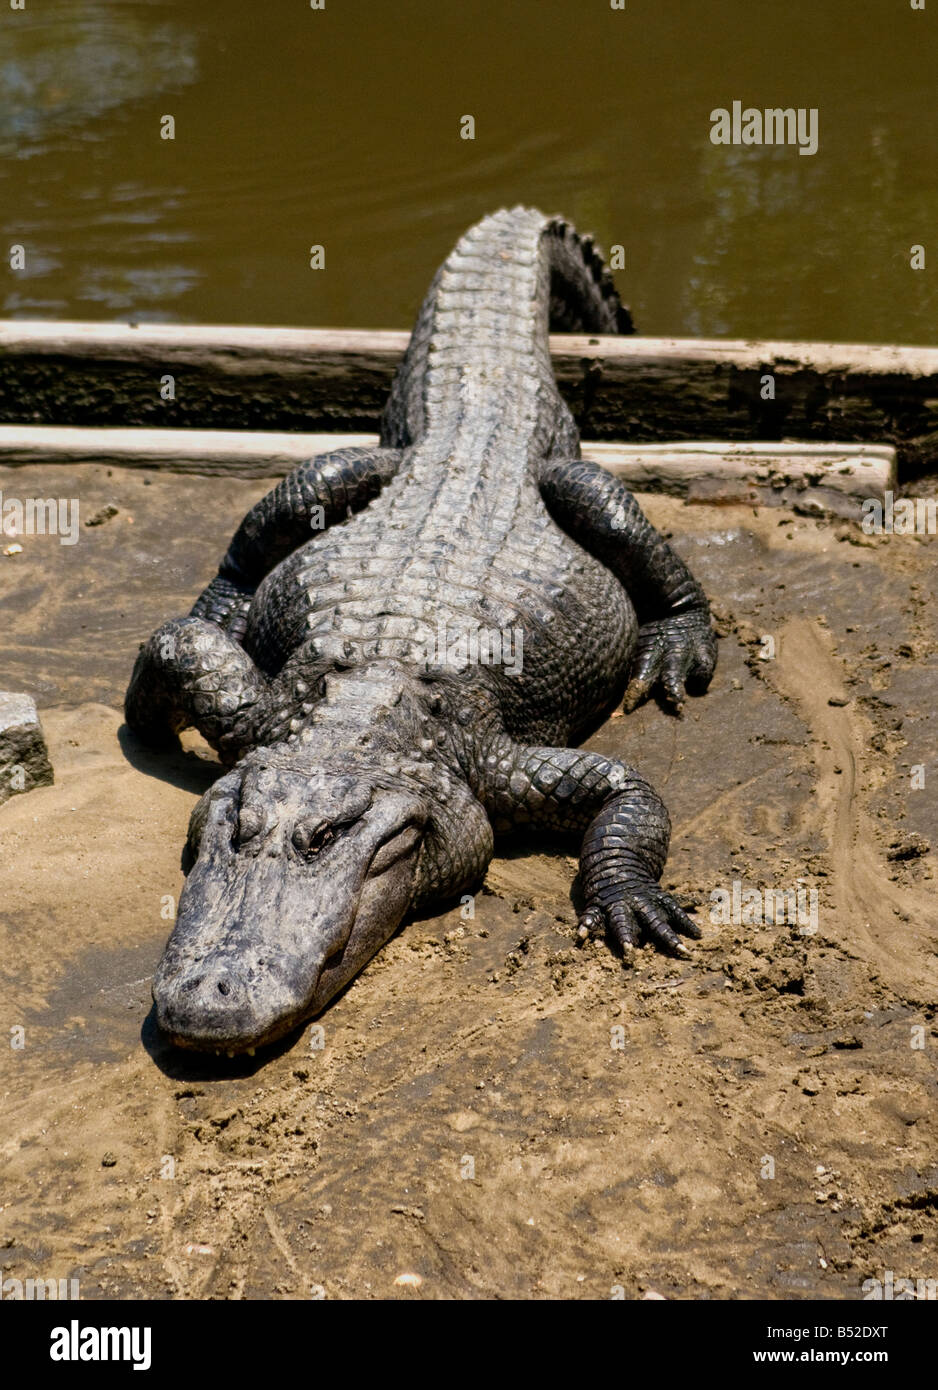 A large, fat alligator basking in the sun - Stock Image